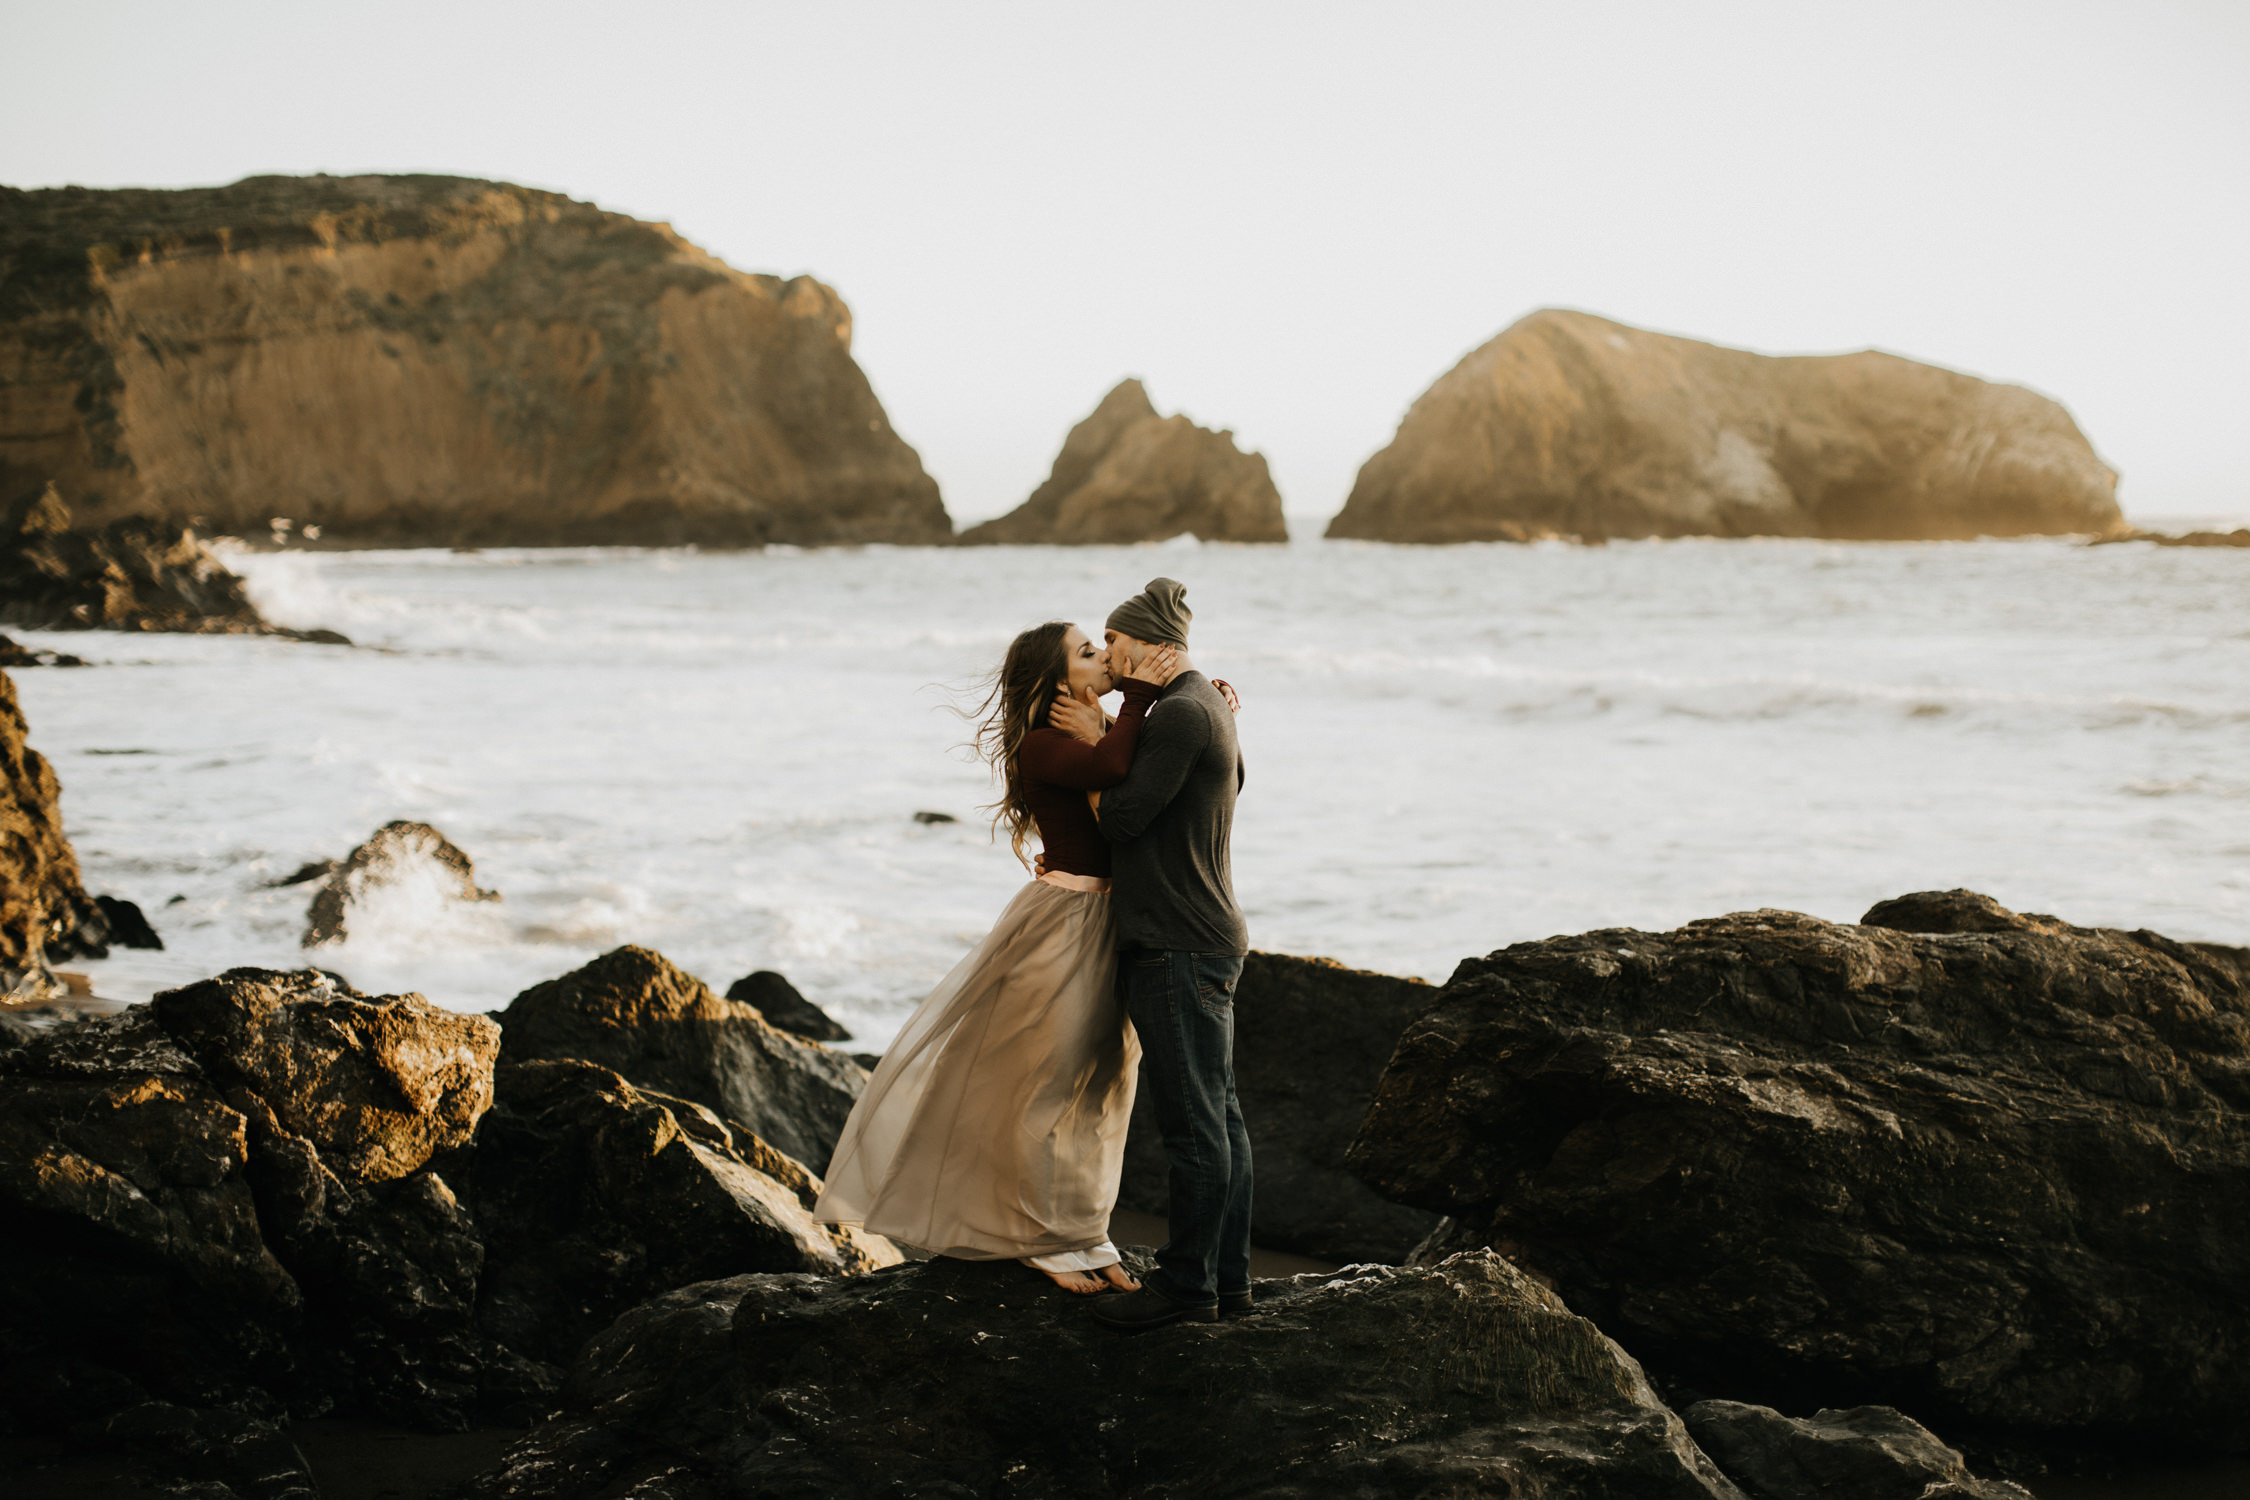 couple-intimate-engagement-session-sausalito-california-99.jpg